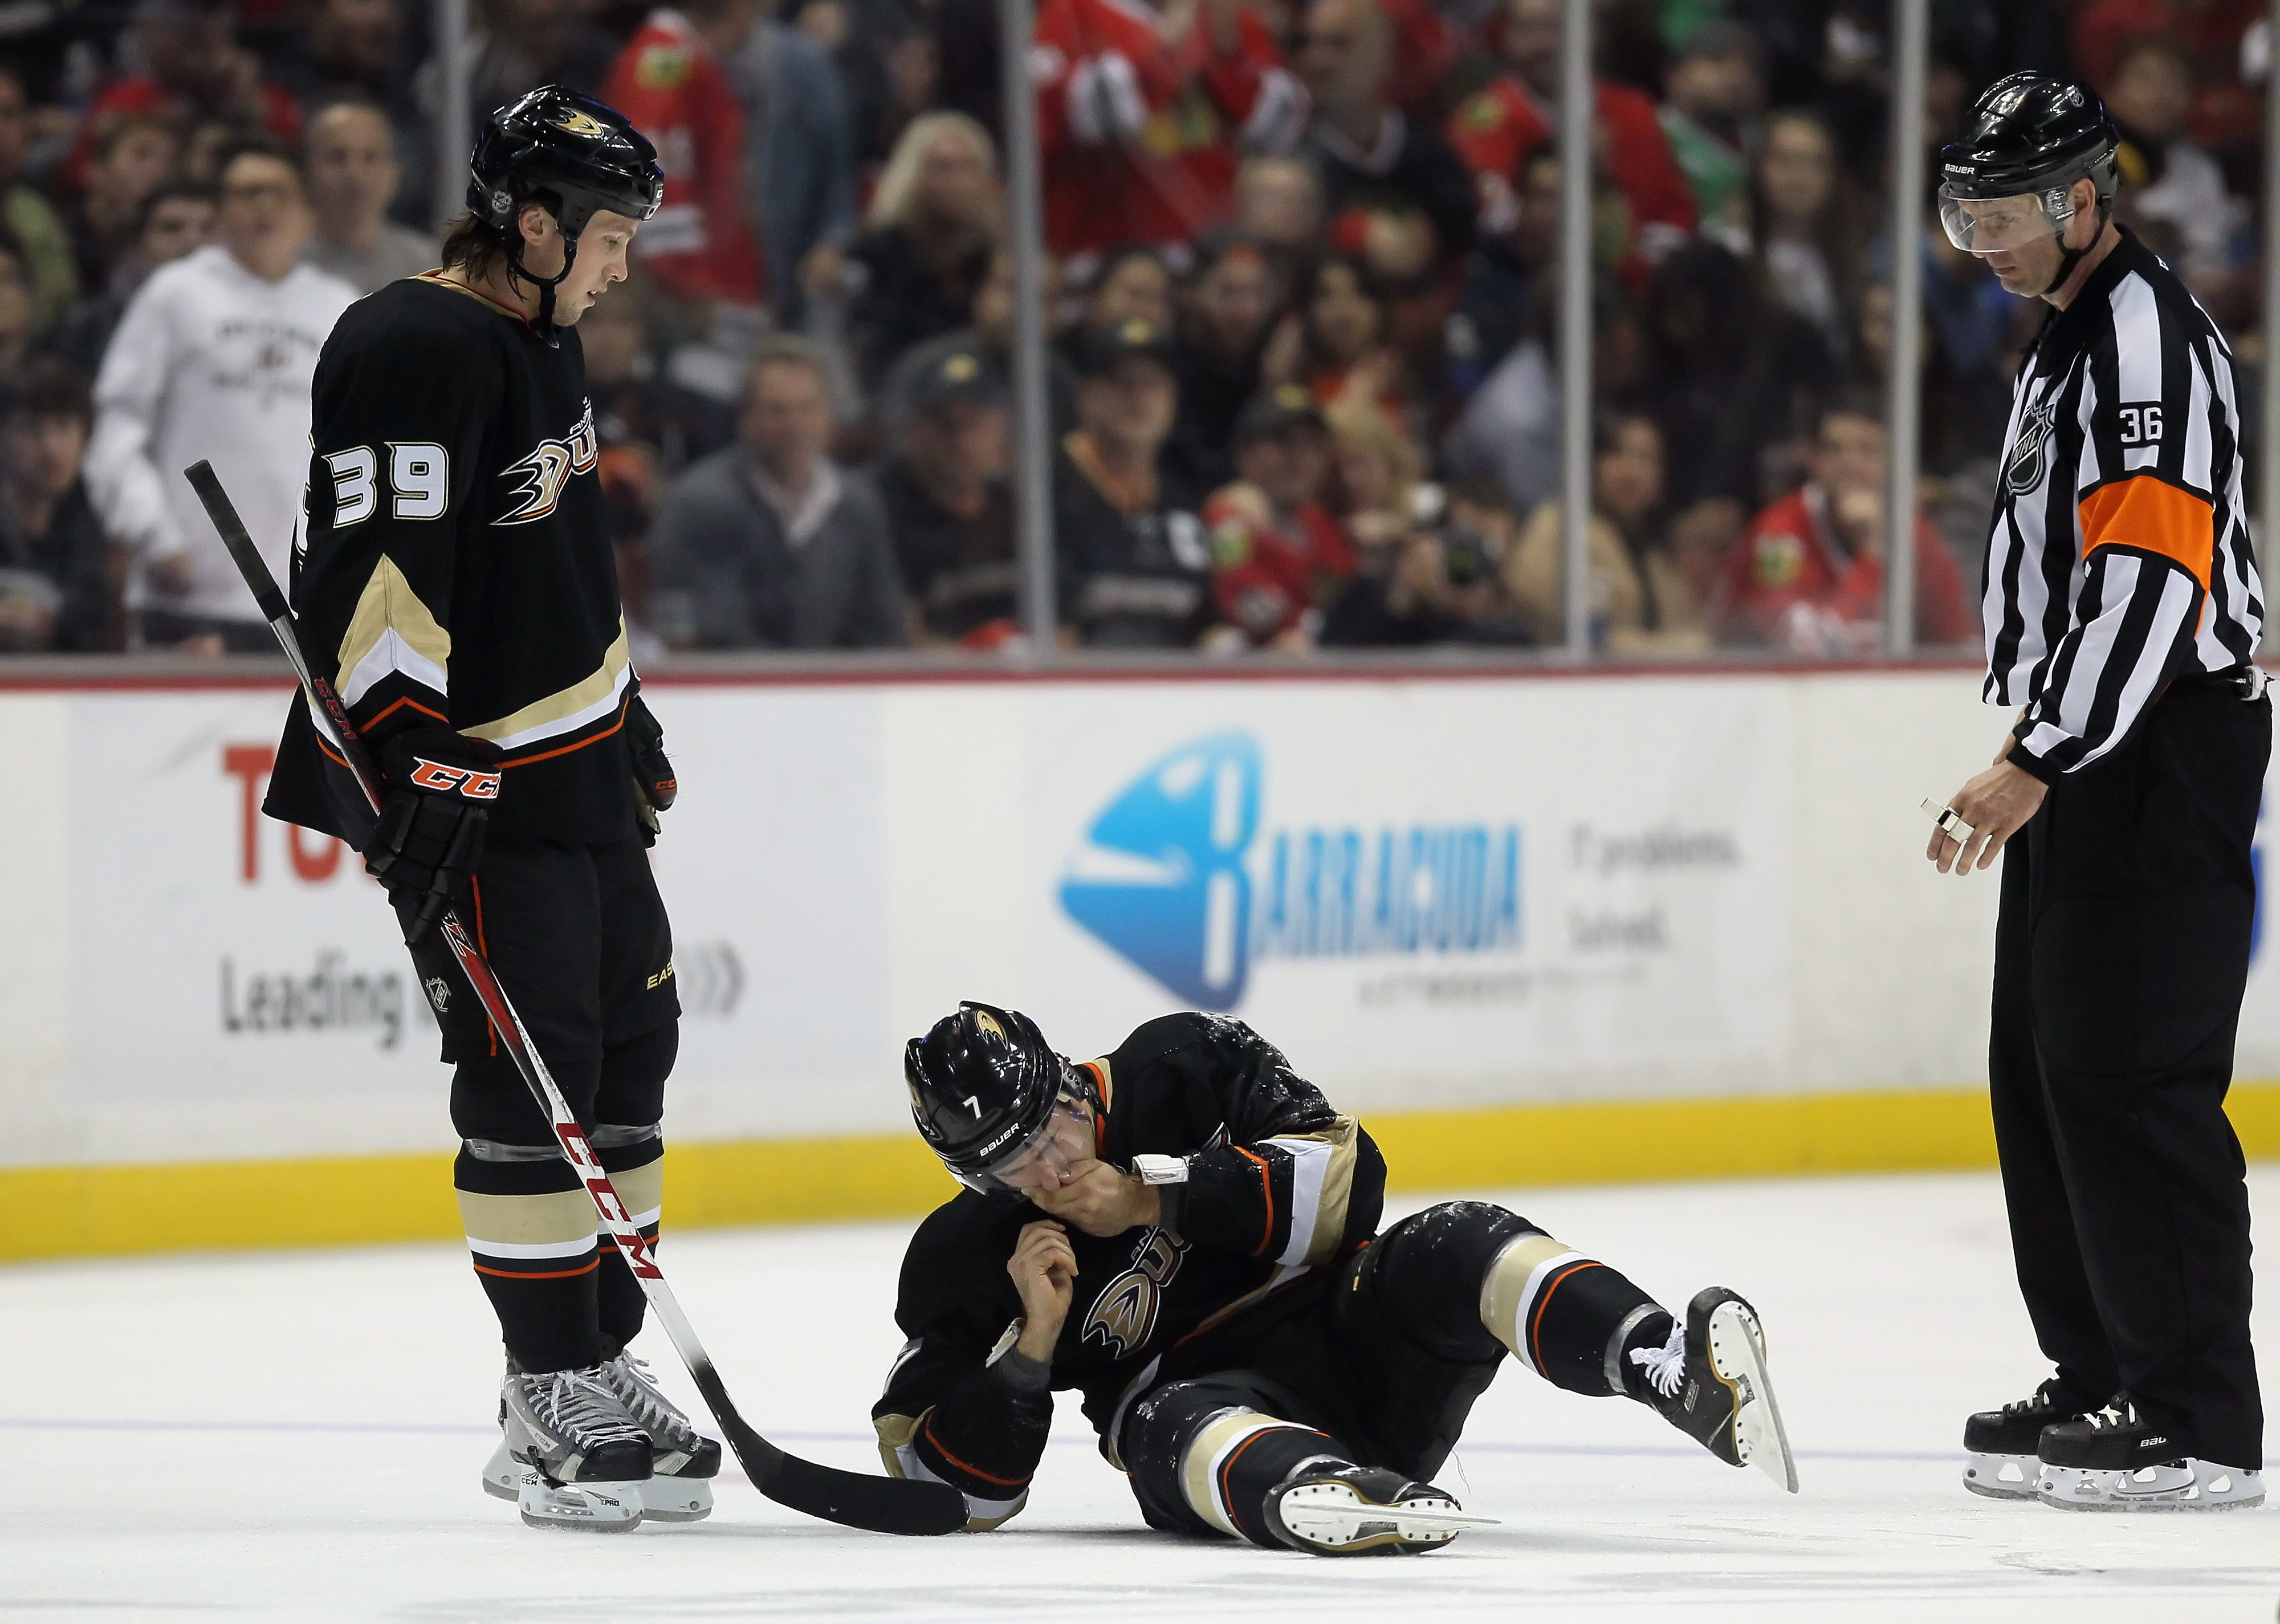 High stick and you're bleeding? Nah, you're a Duck, no penalty there.